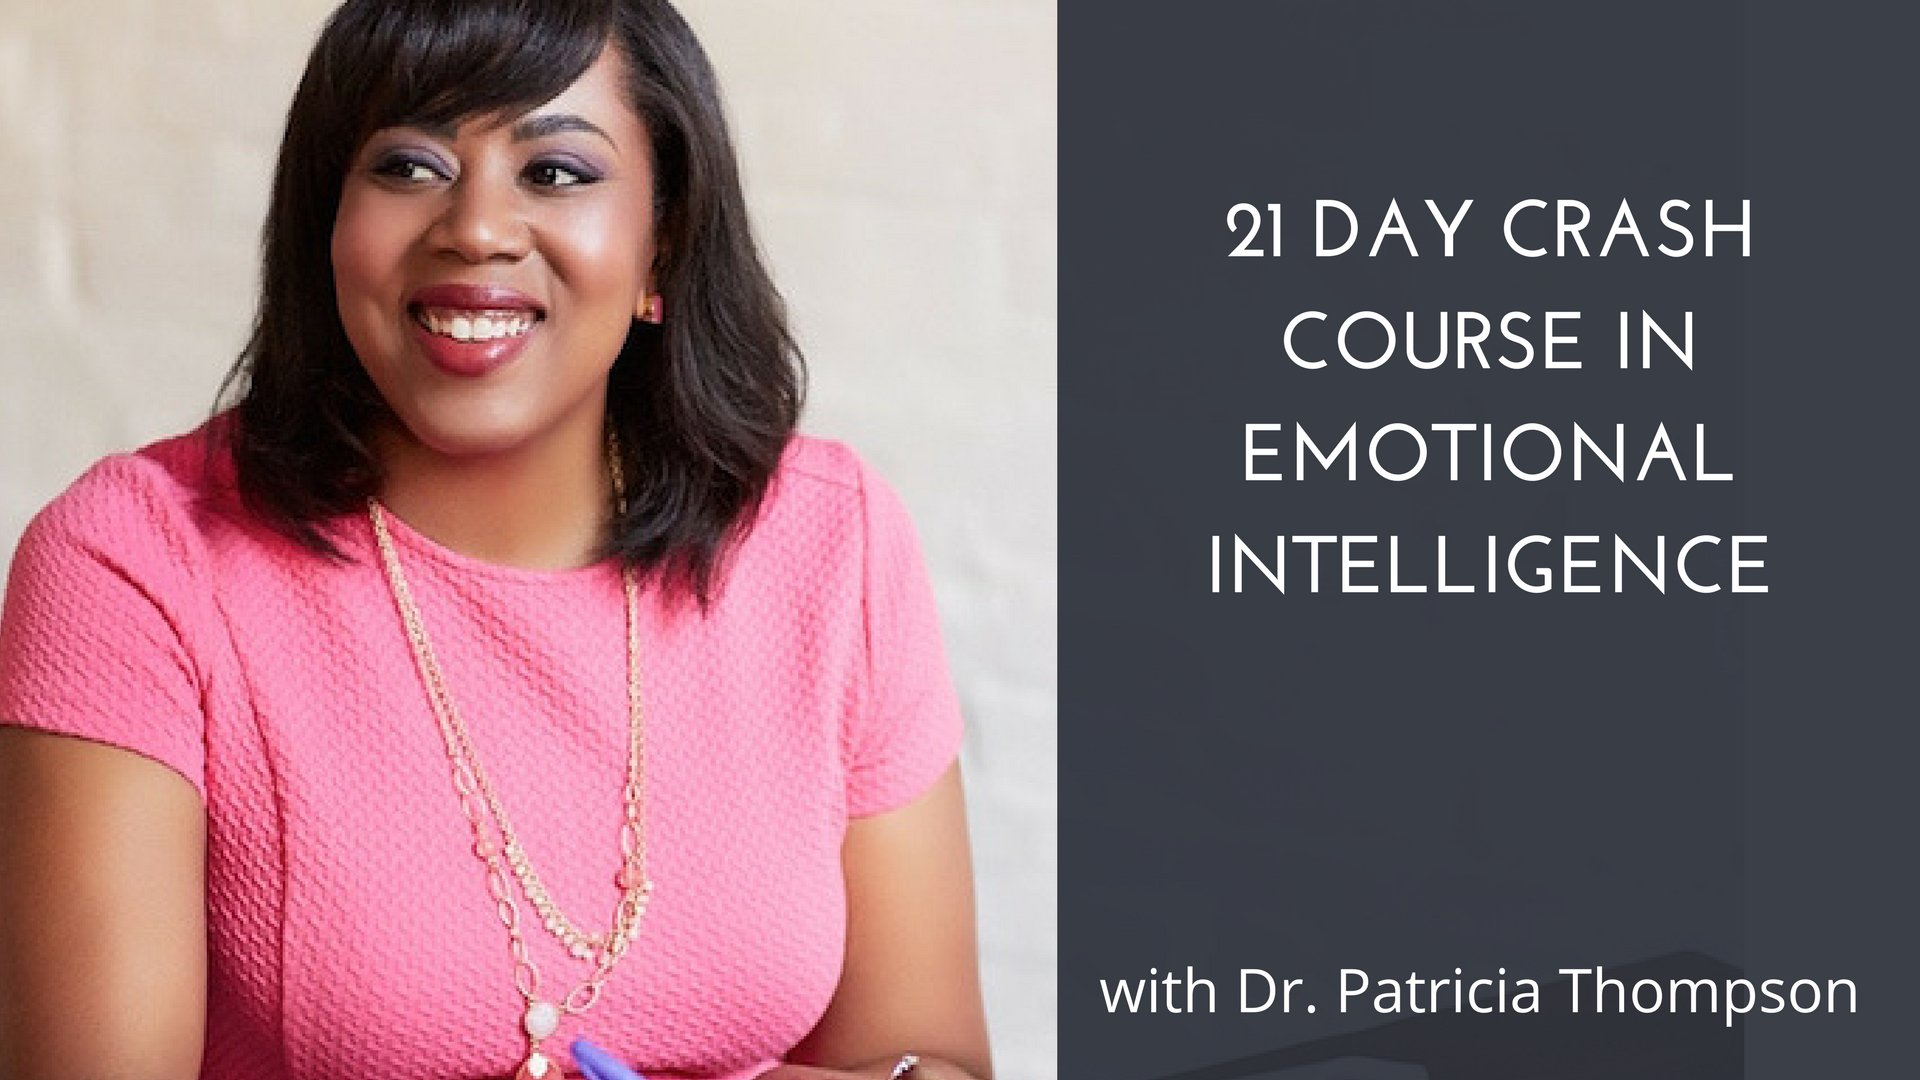 21 Day Crash Course in Emotional Intelligence